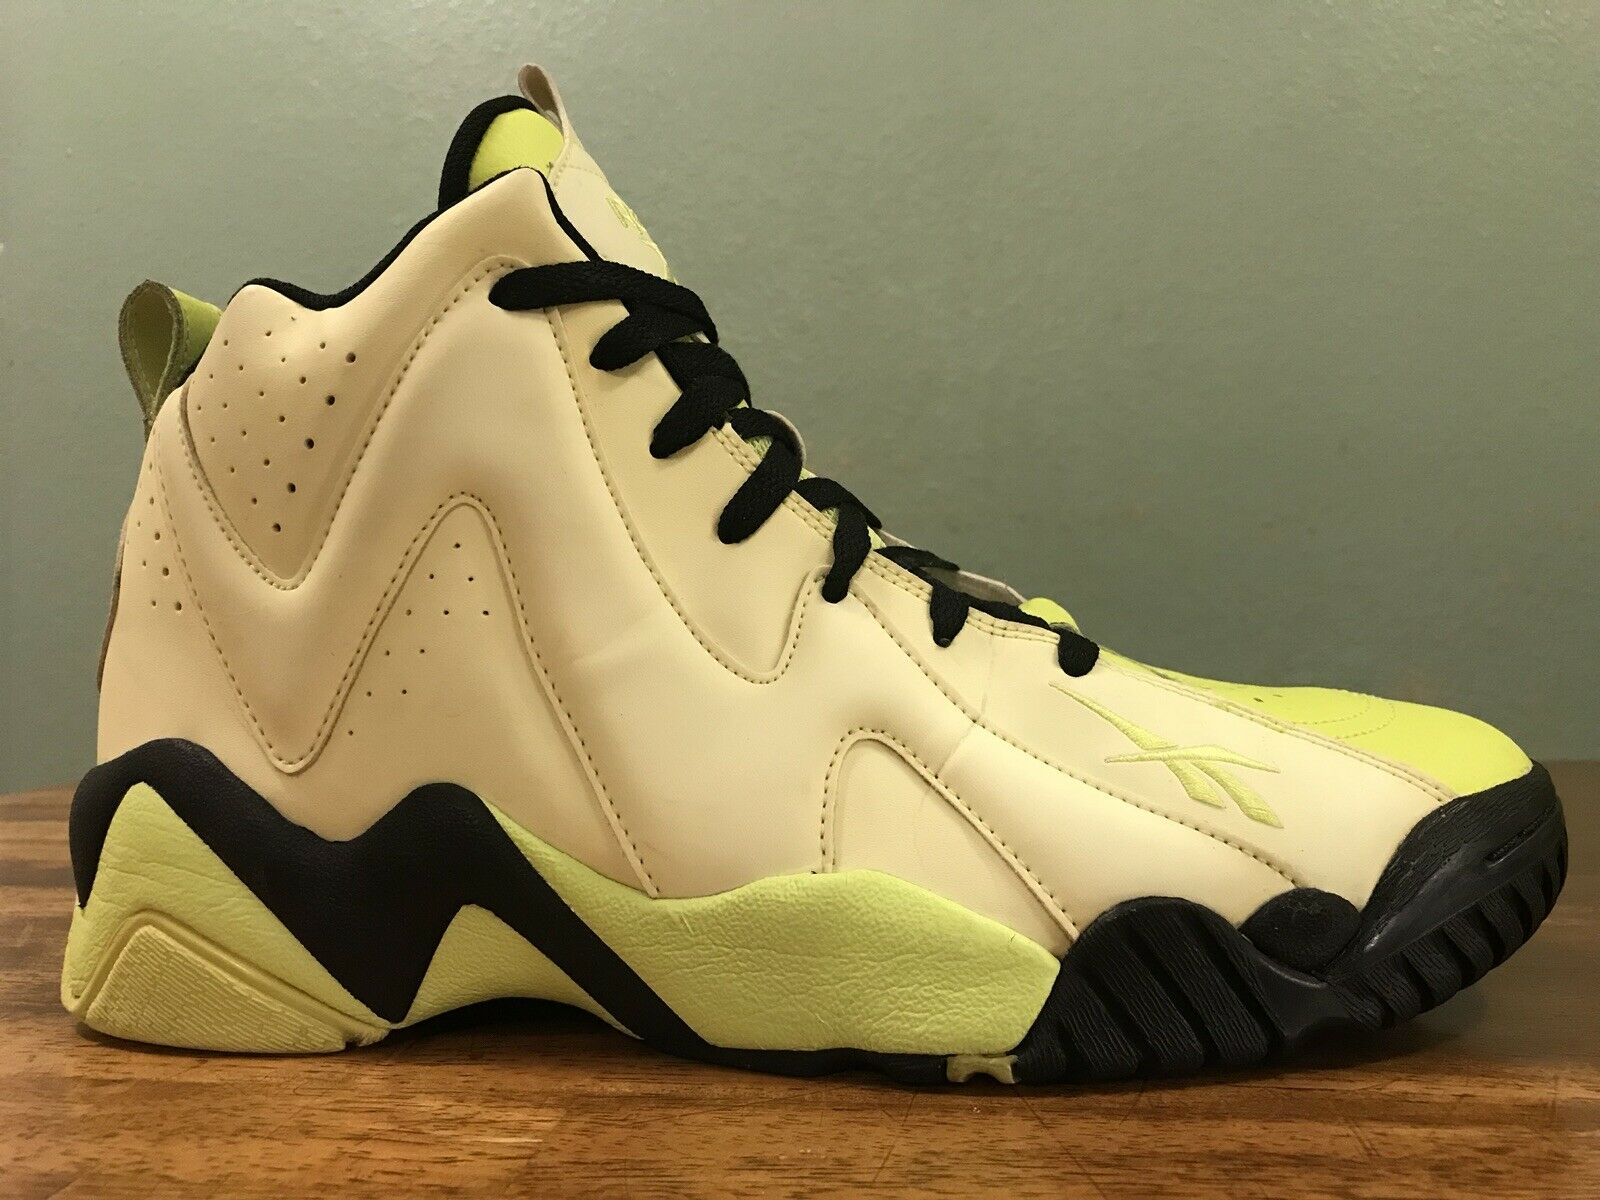 Reebok Kamikaze II Mid Jaune Fluo GFaible in the Dark Chaussures Hommes Taille 12